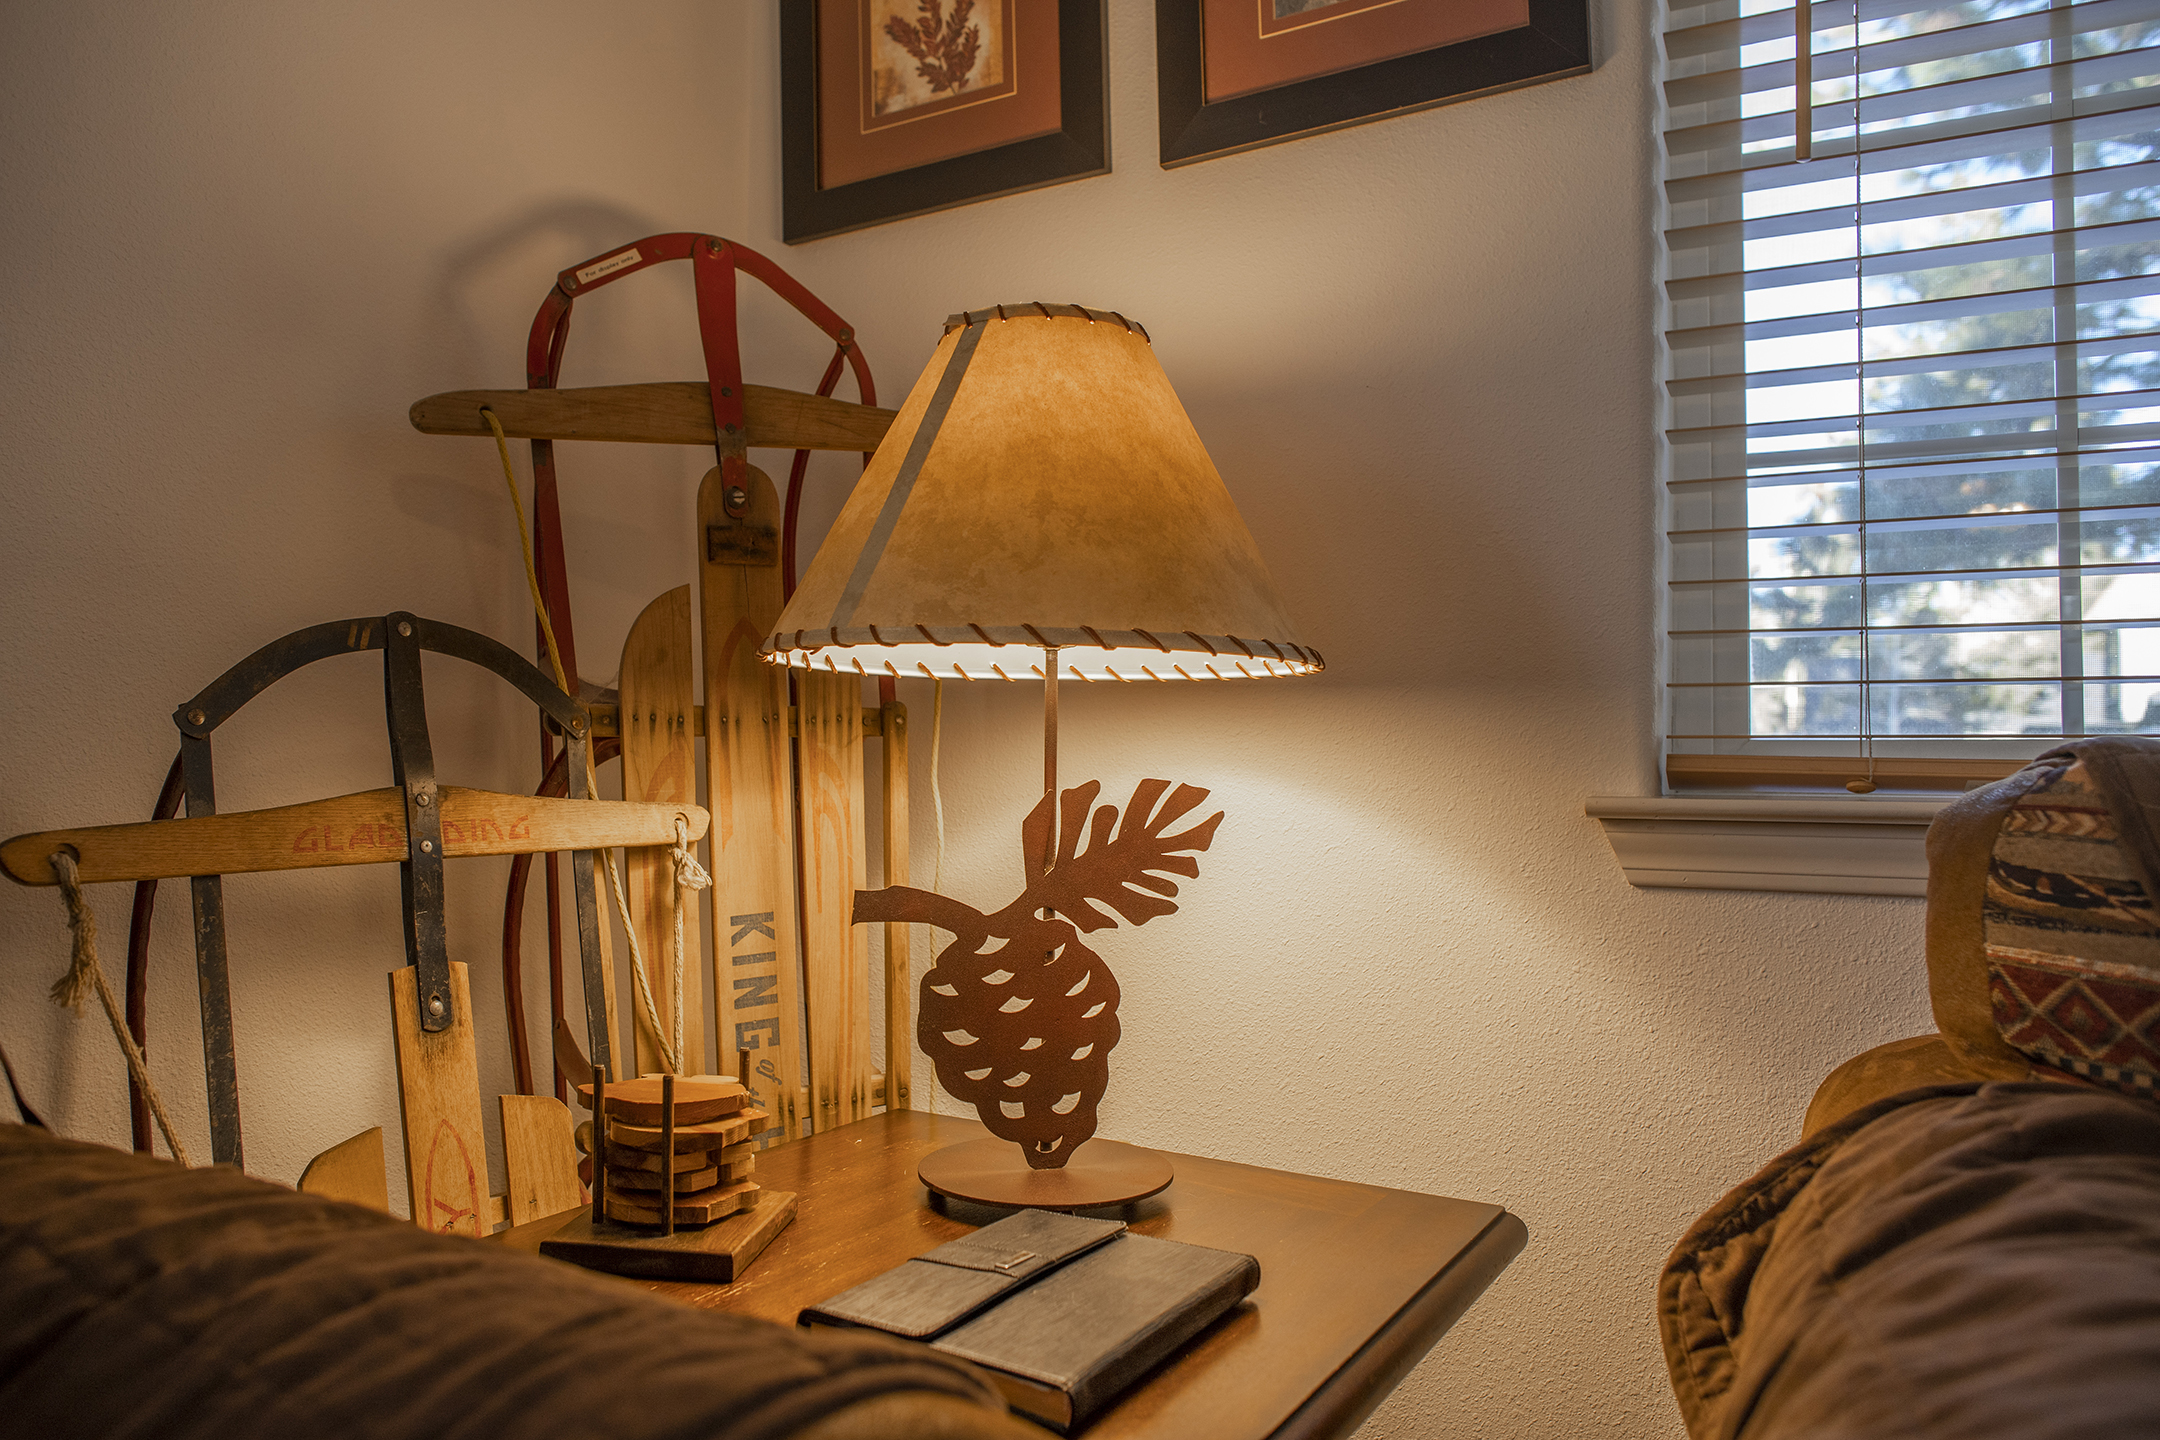 Living room lamp with metal pinecone base